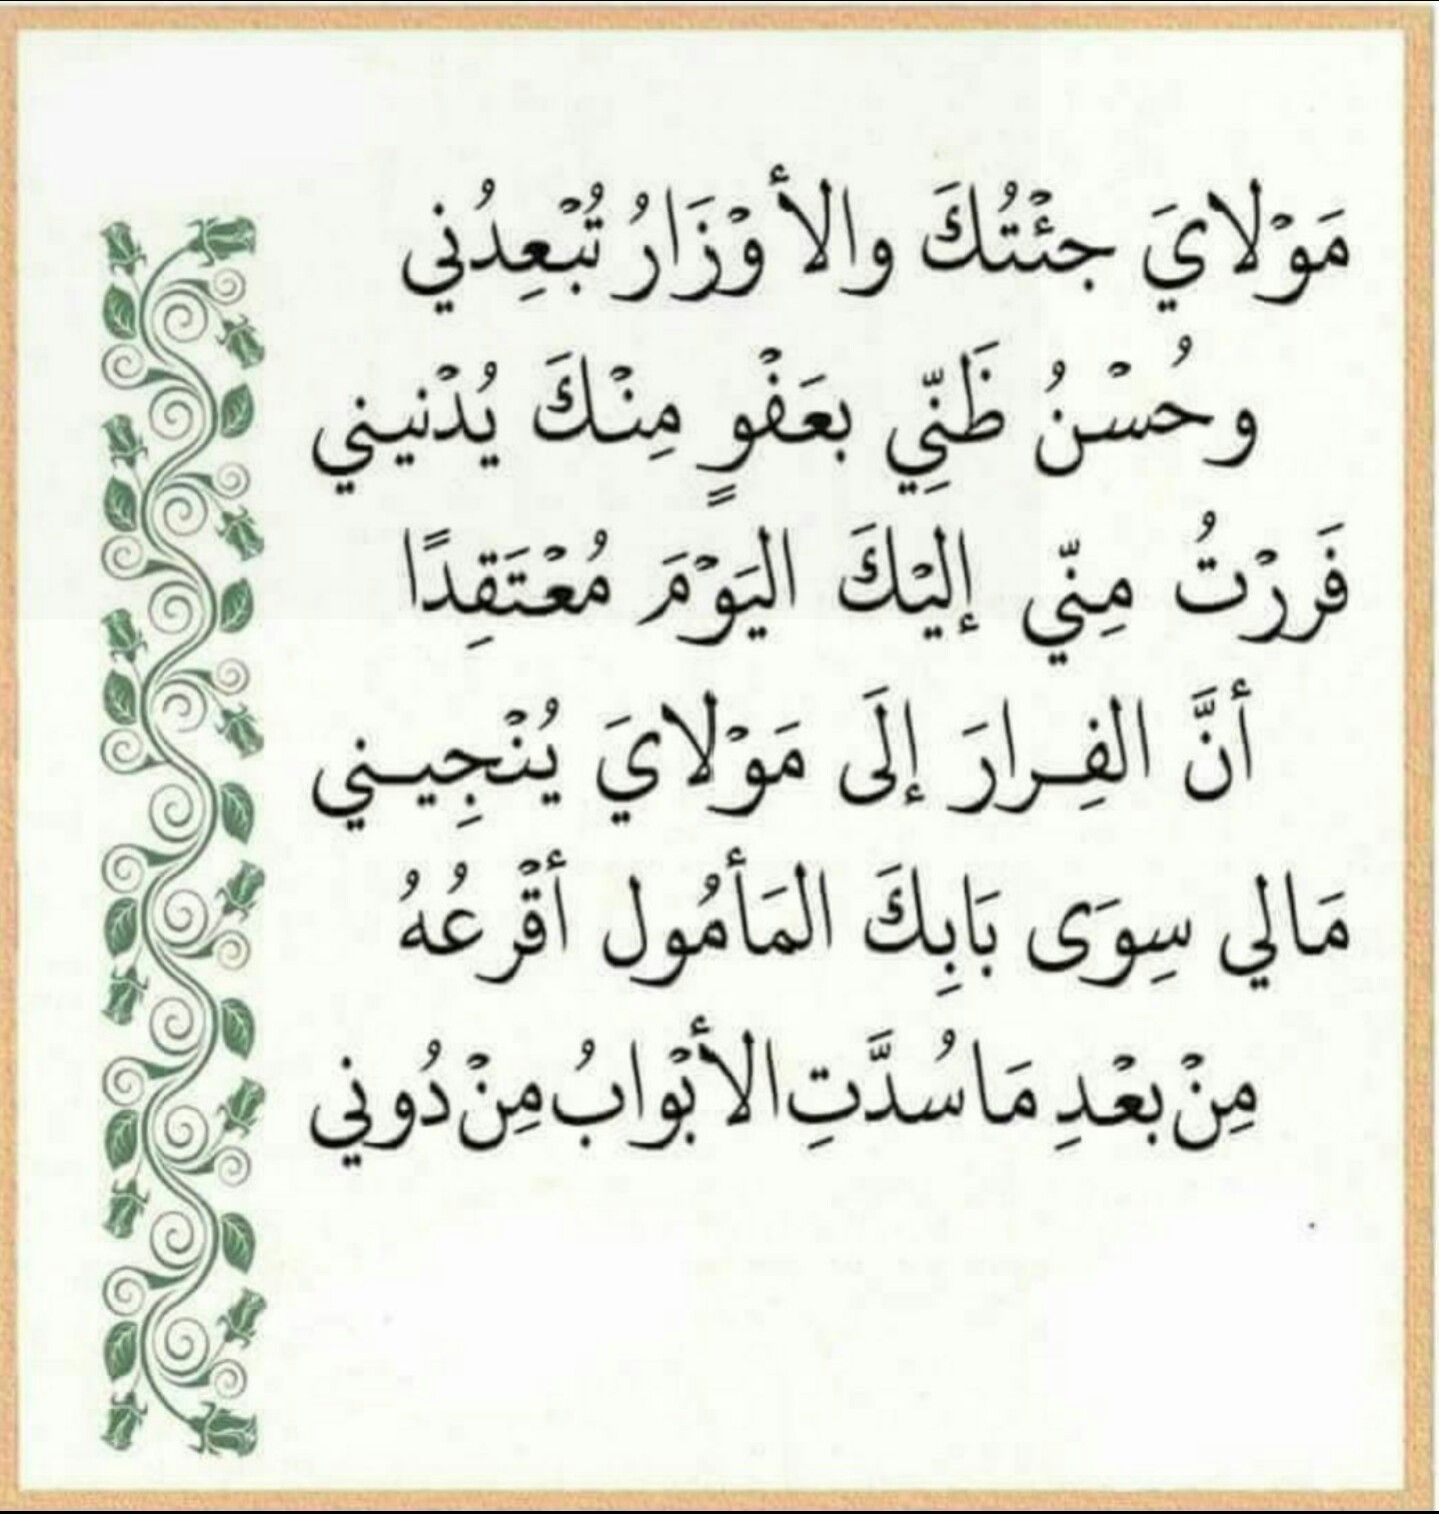 Pin by G . S on ابيات & اشعار Islamic quotes, Words